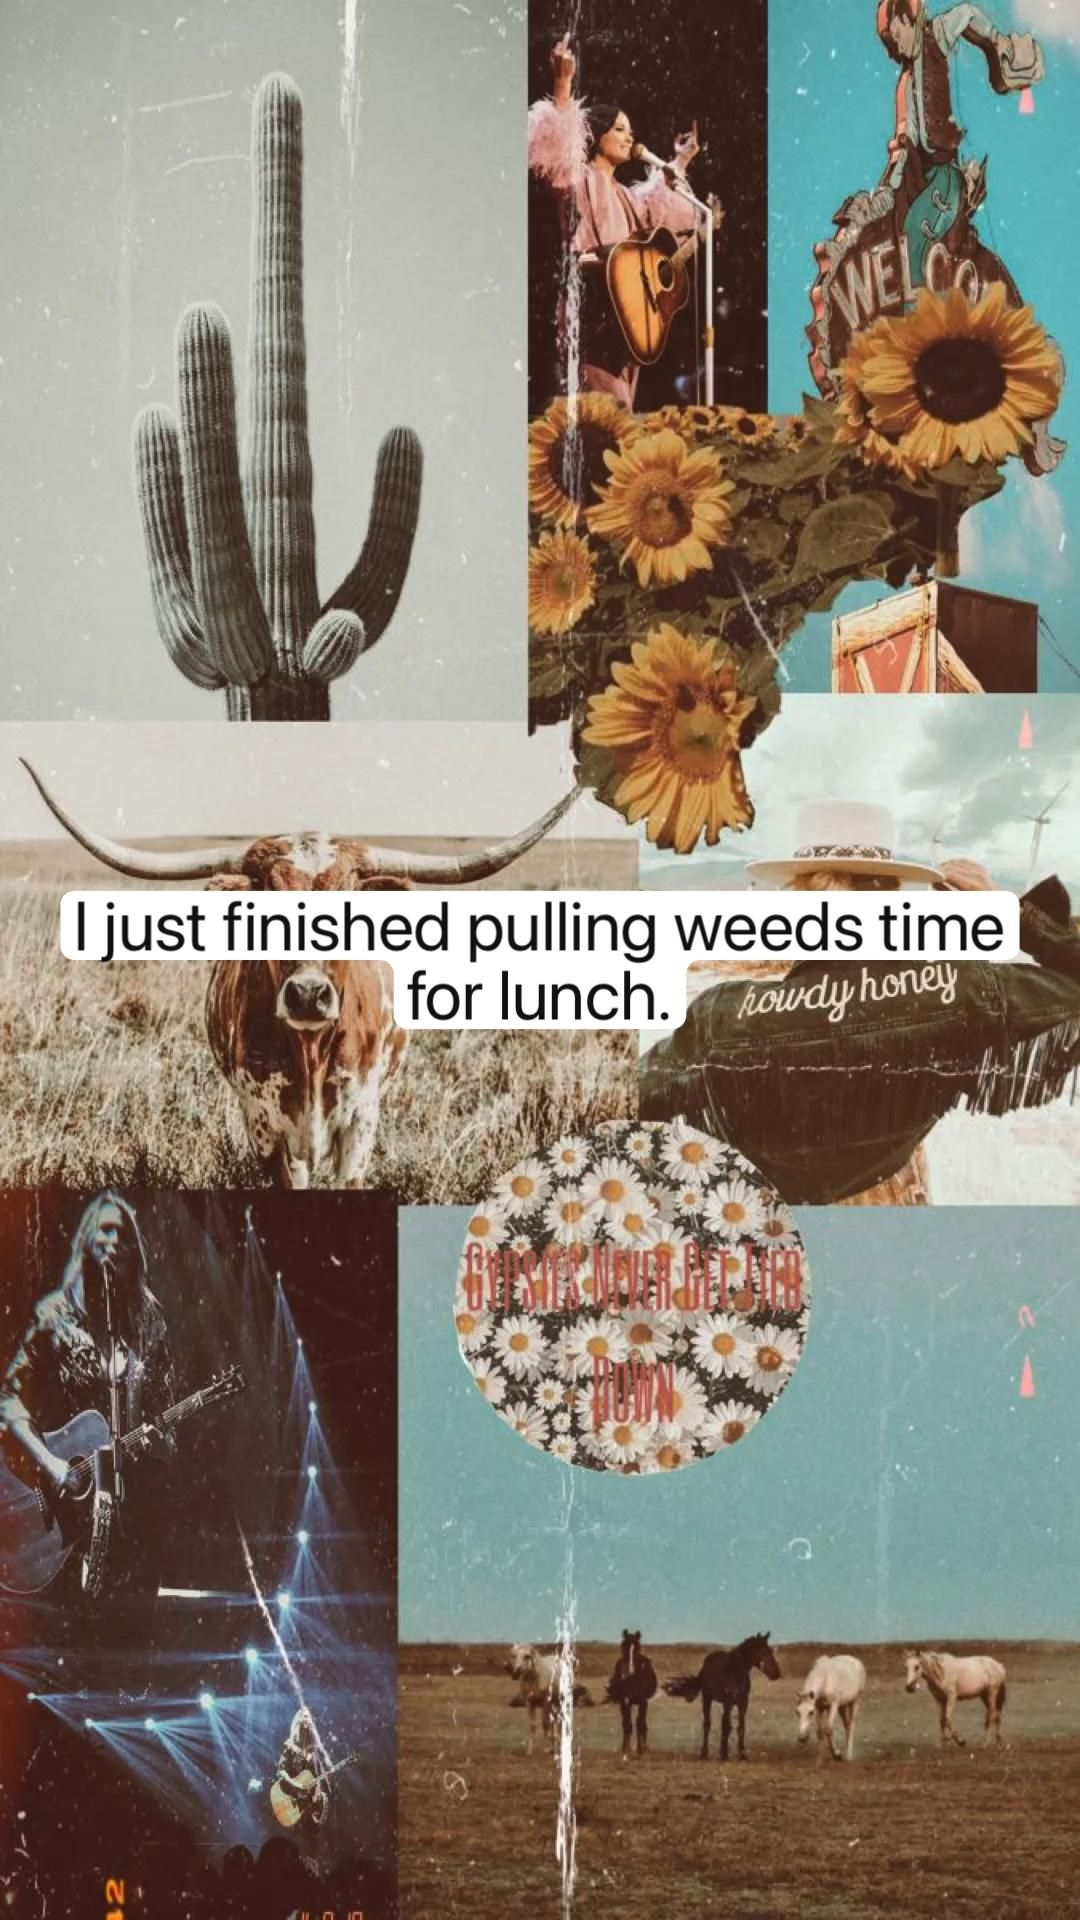 I just finished pulling weeds time for lunch.